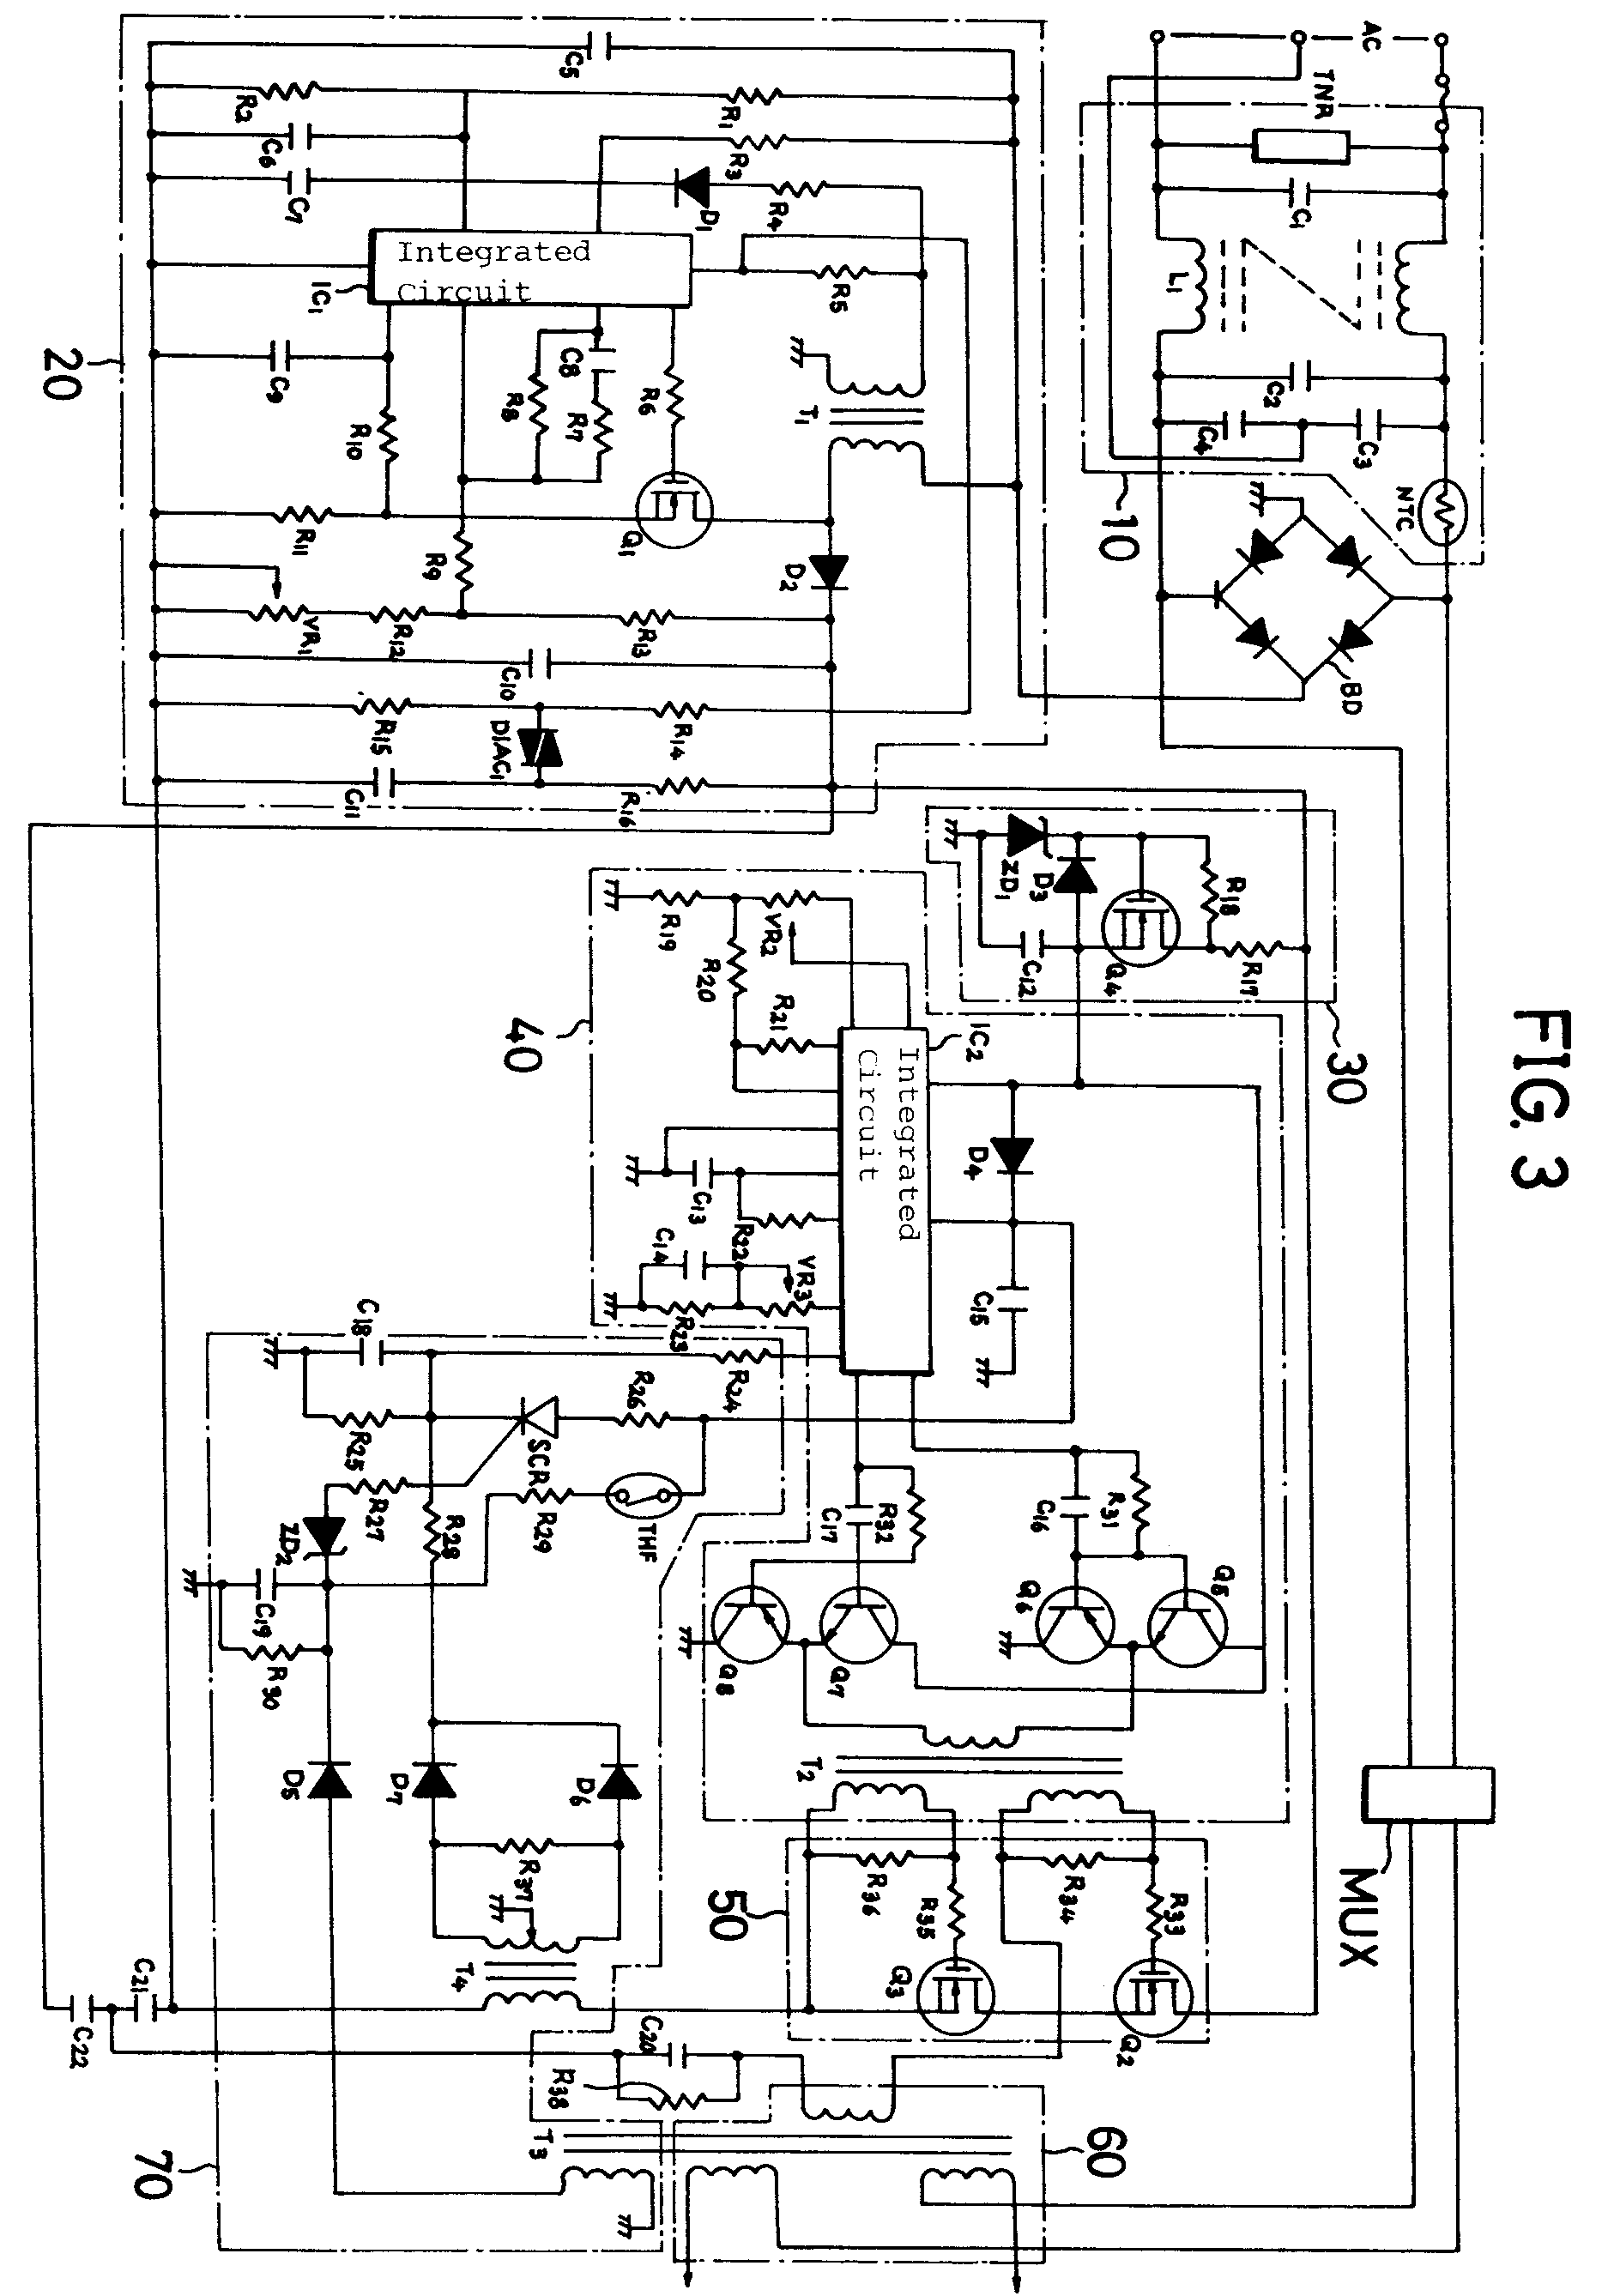 Patent Ep0591576a1 An Ultrapower Saving Inverter Circuit Which Schematic Diagram Drawing